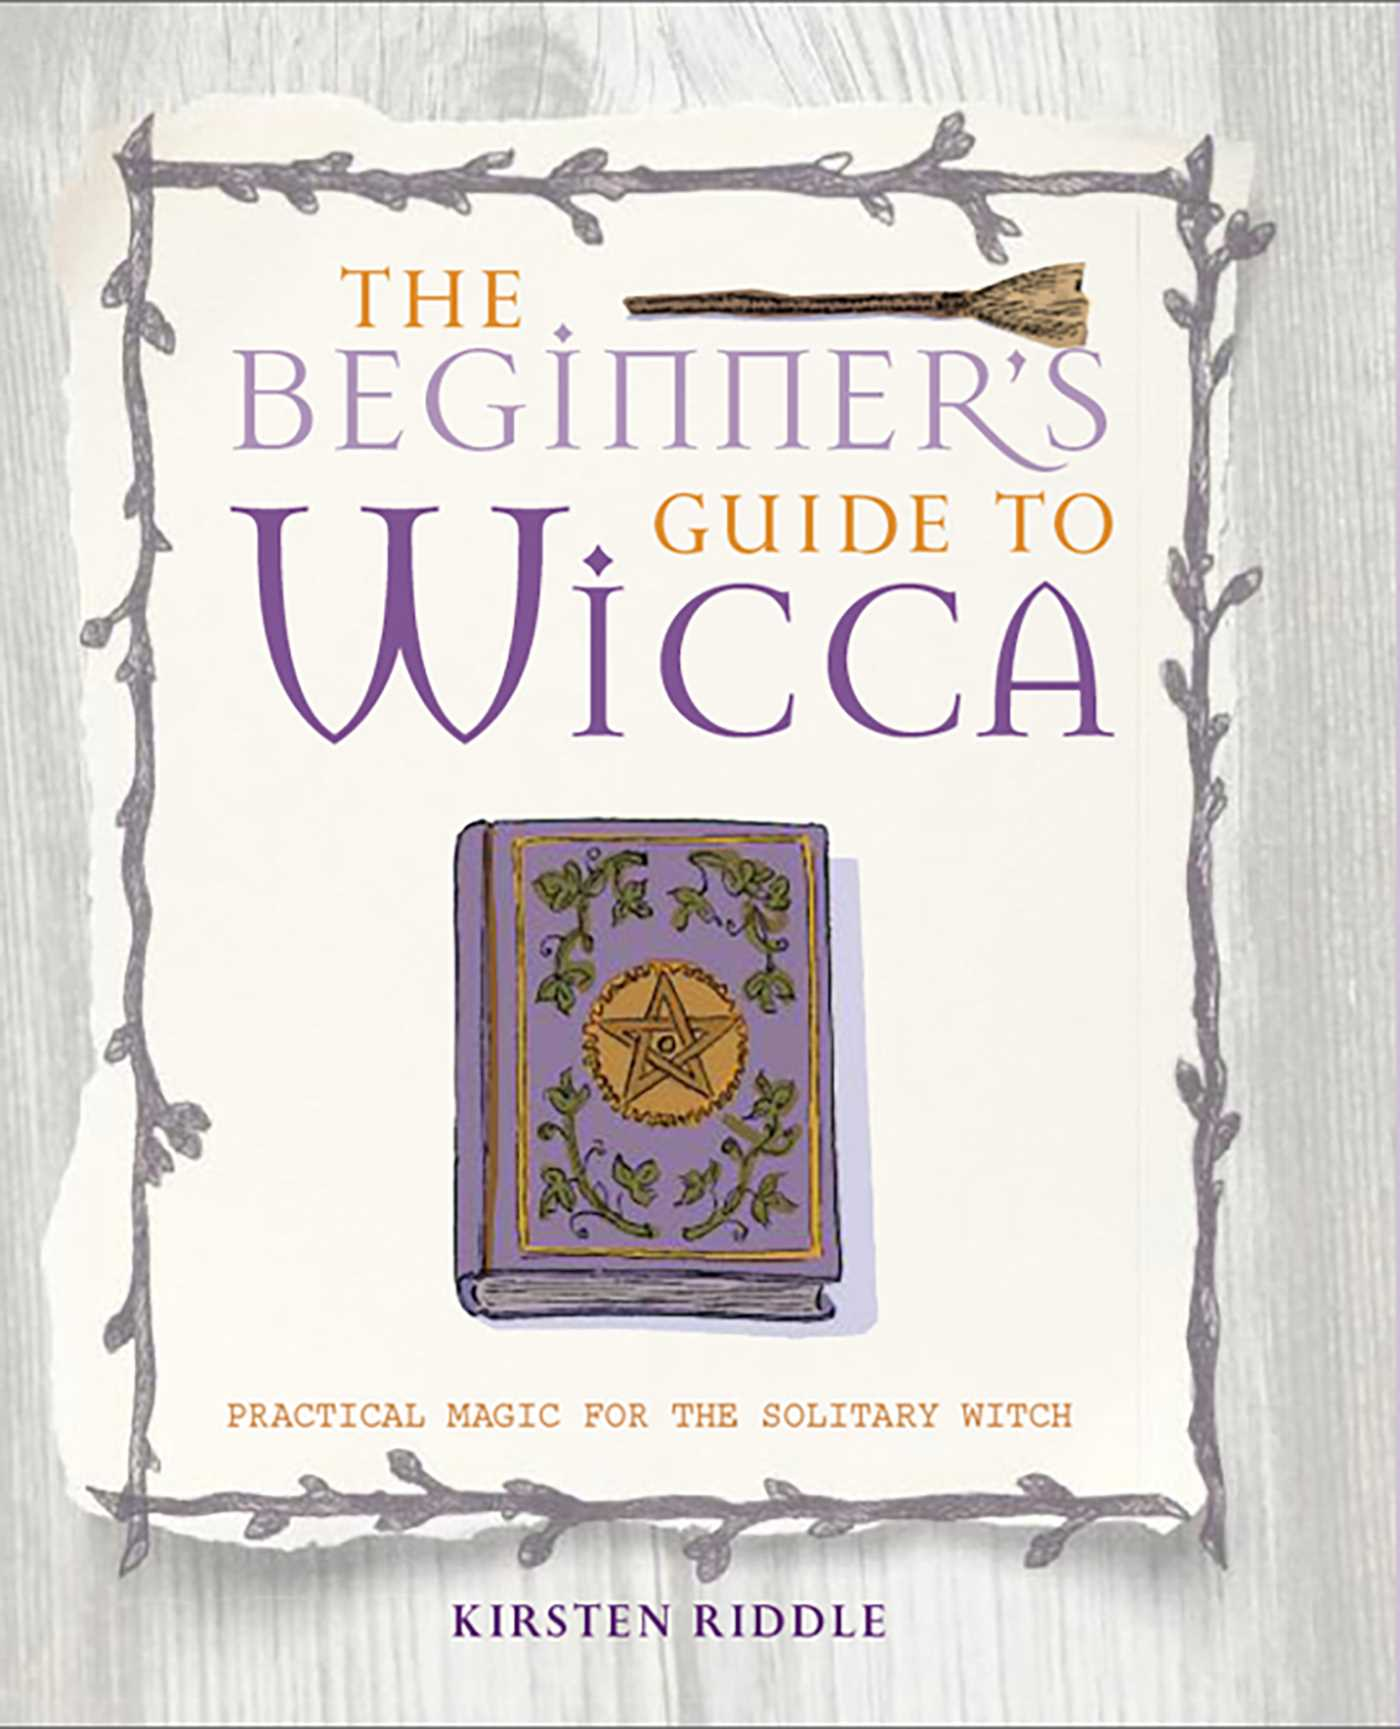 The Beginner's Guide to Wicca | Book by Kirsten Riddle